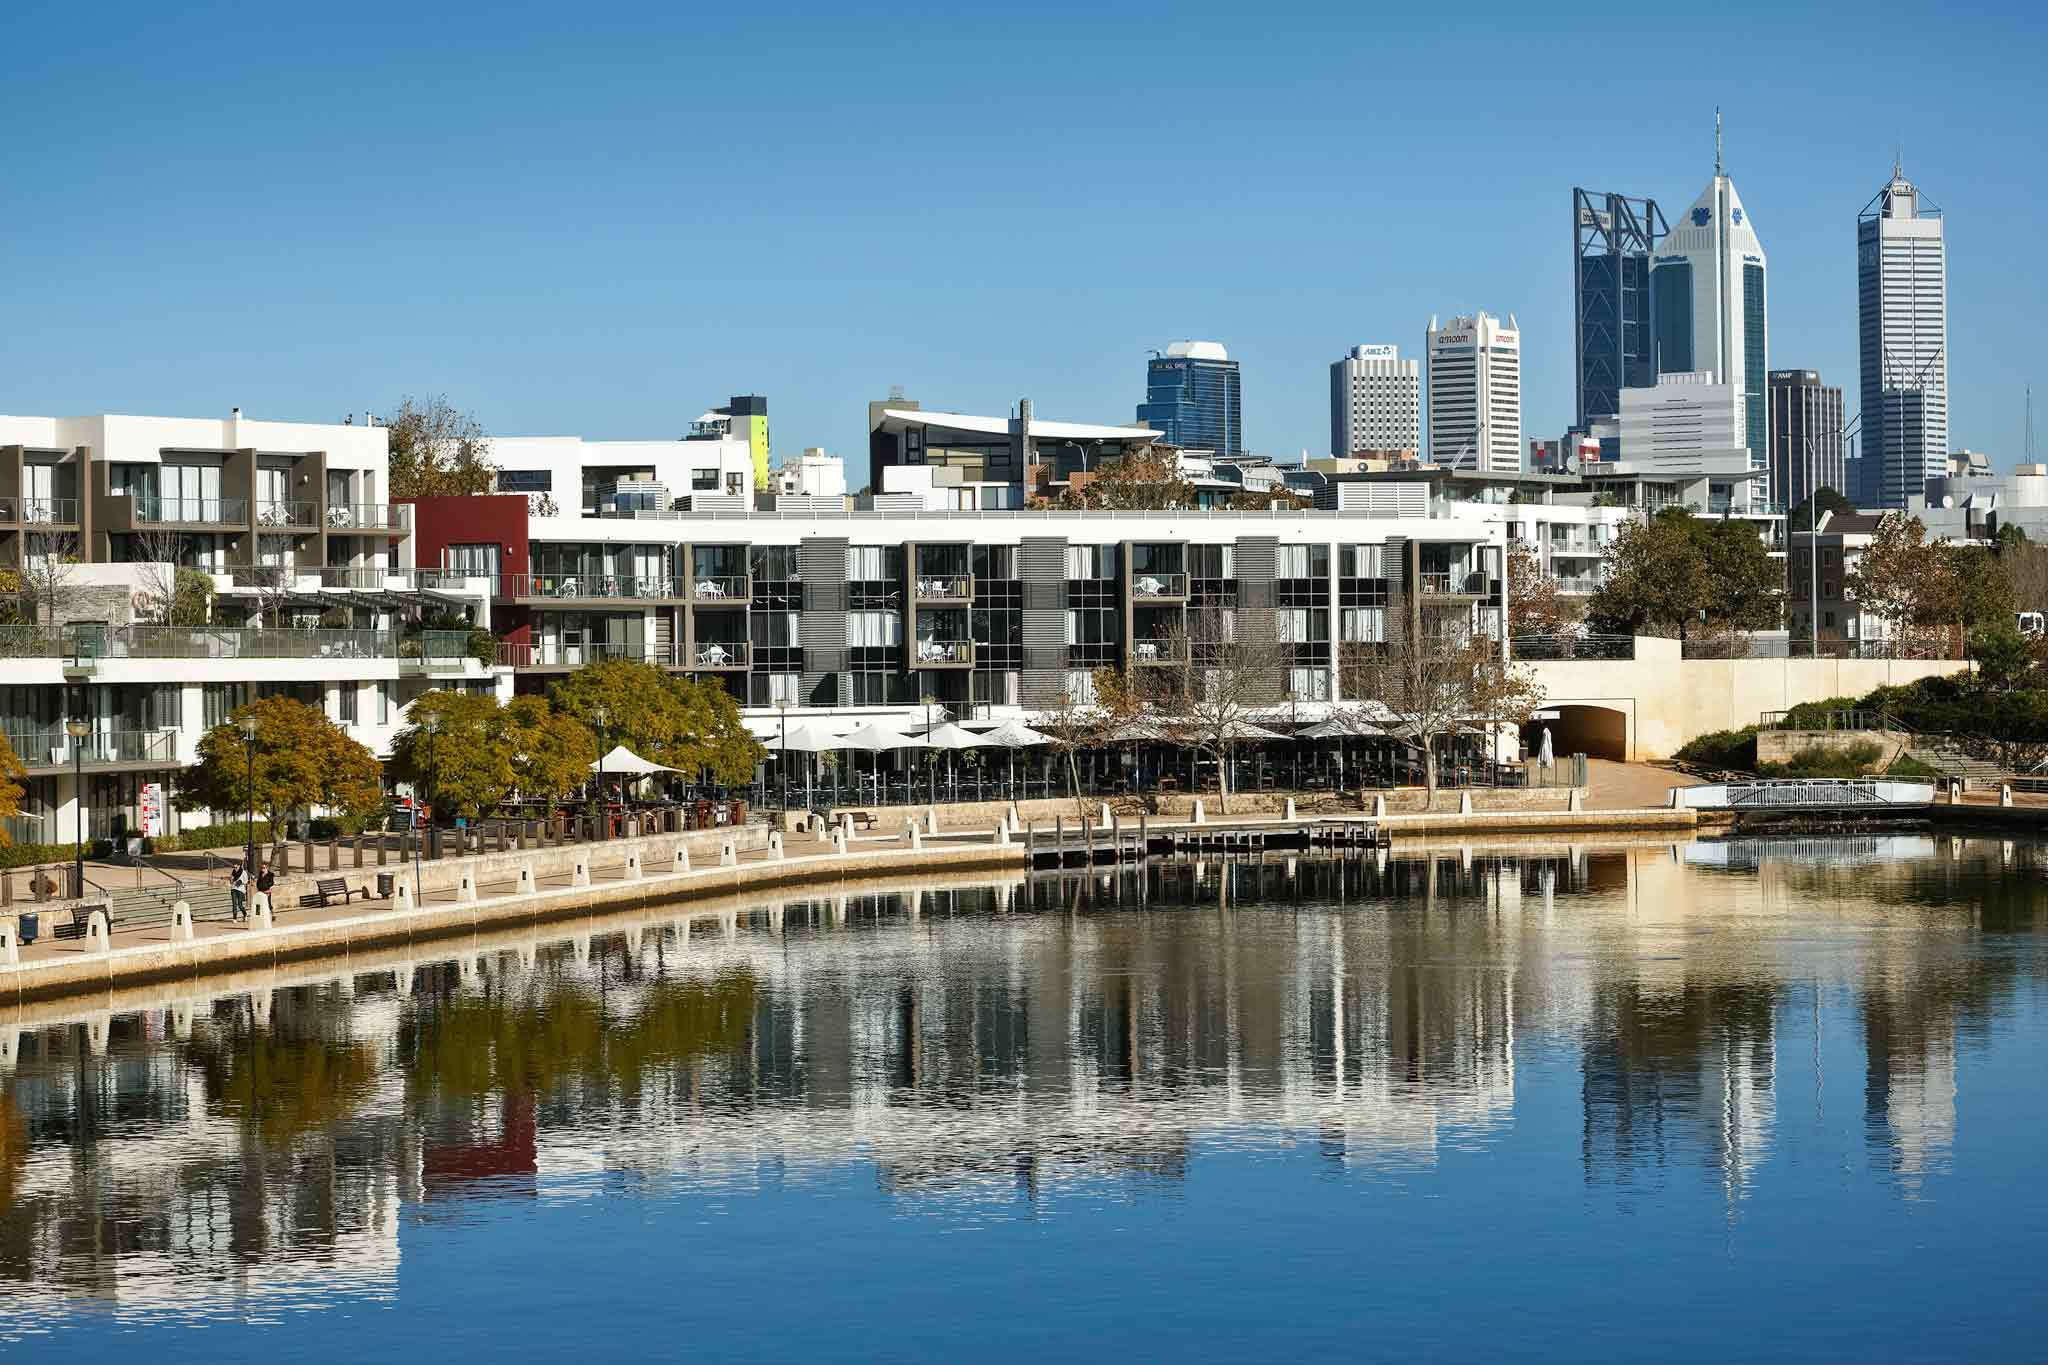 Hotel - The Sebel East Perth